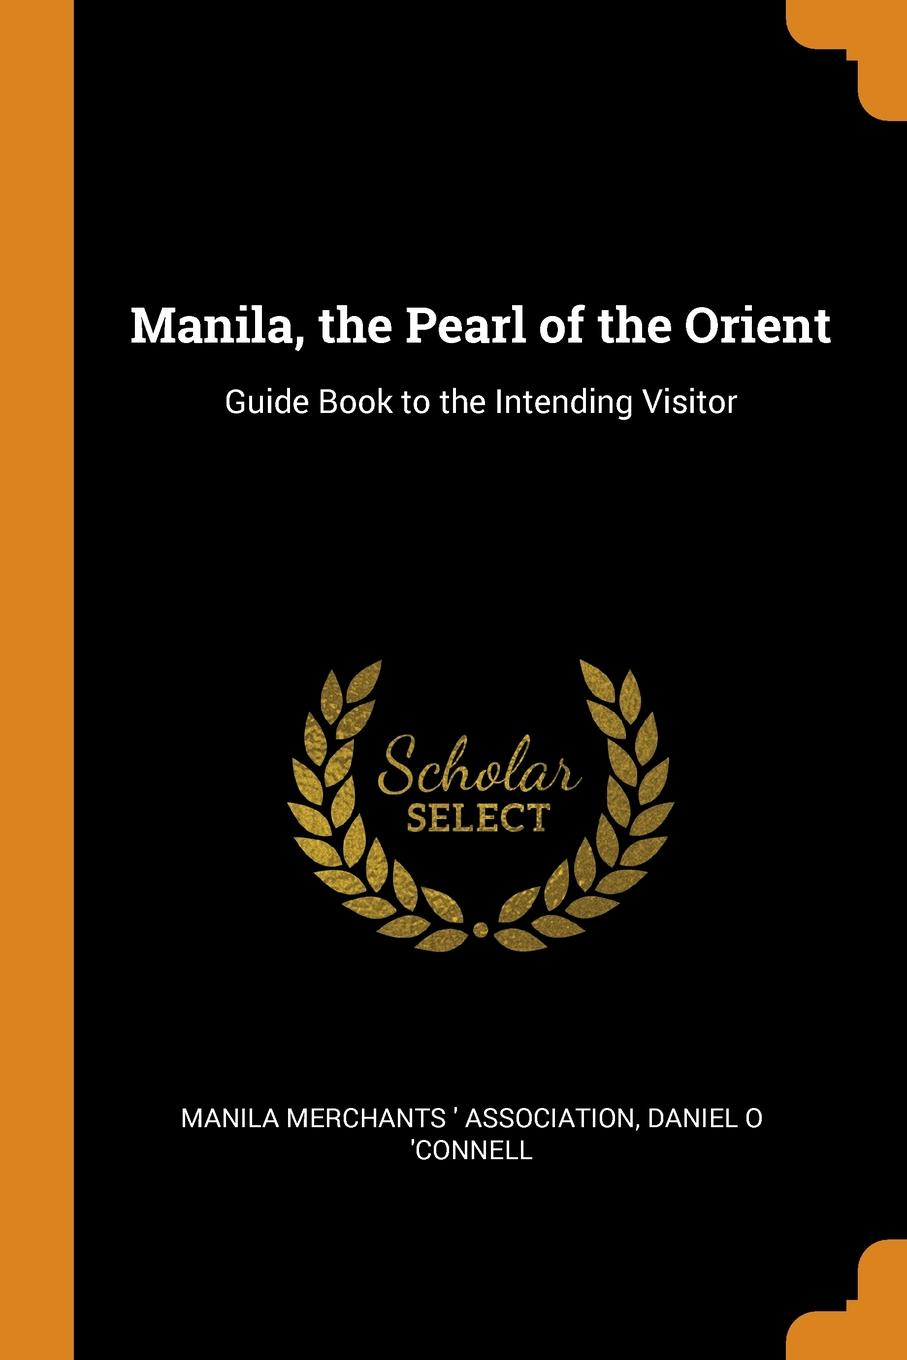 Daniel O 'Conne Merchants ' Association Manila, the Pearl of the Orient. Guide Book to the Intending Visitor